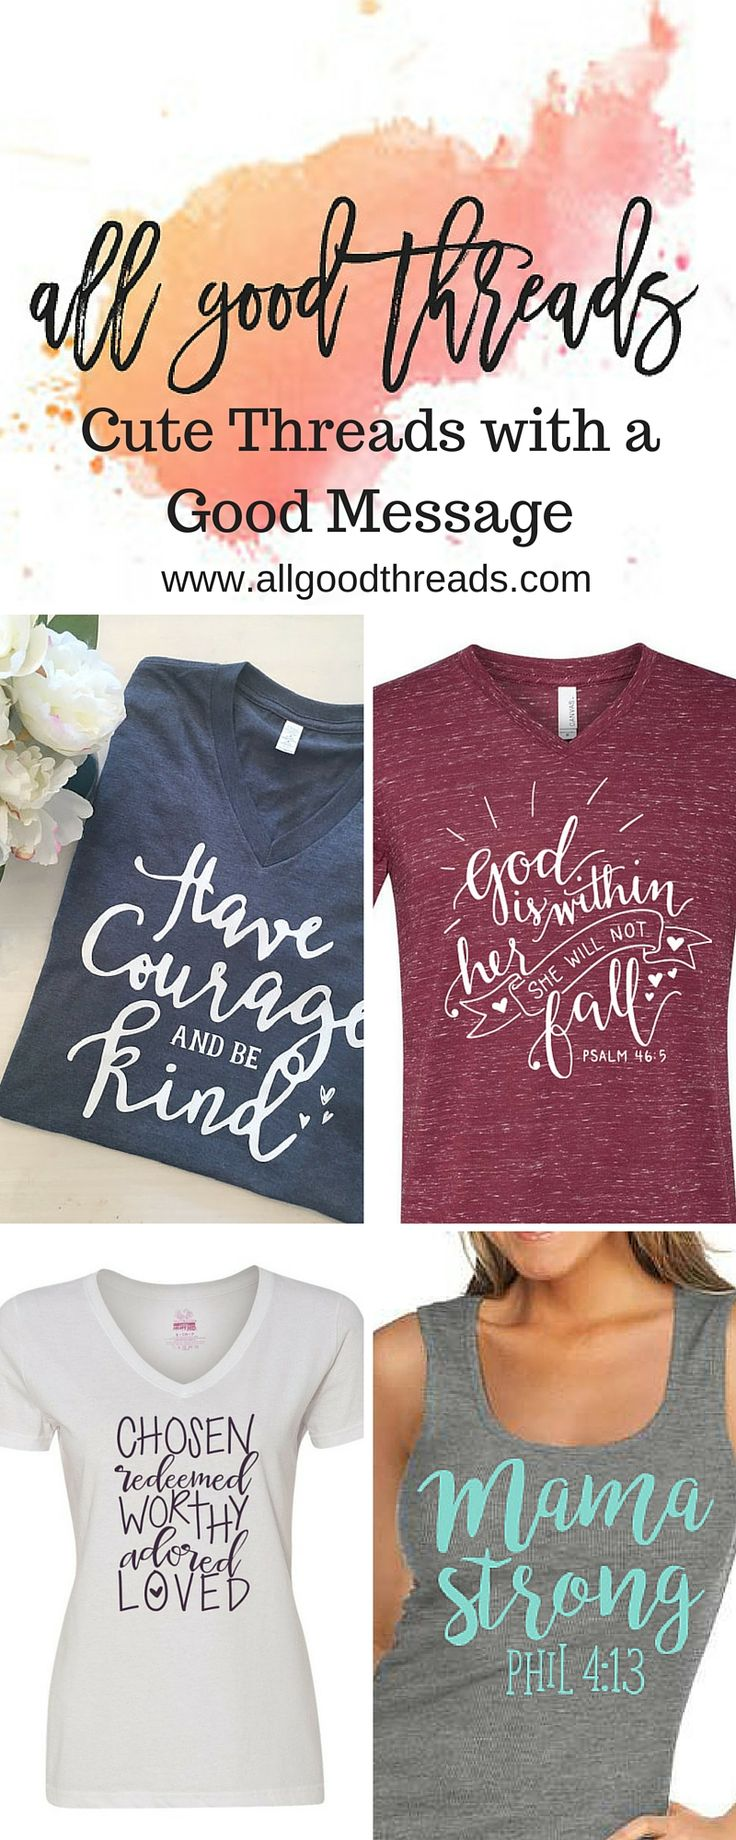 Design t shirt for fundraiser - All Good Threads Cute Threads With A Good Message Christian Shirts Faith Based